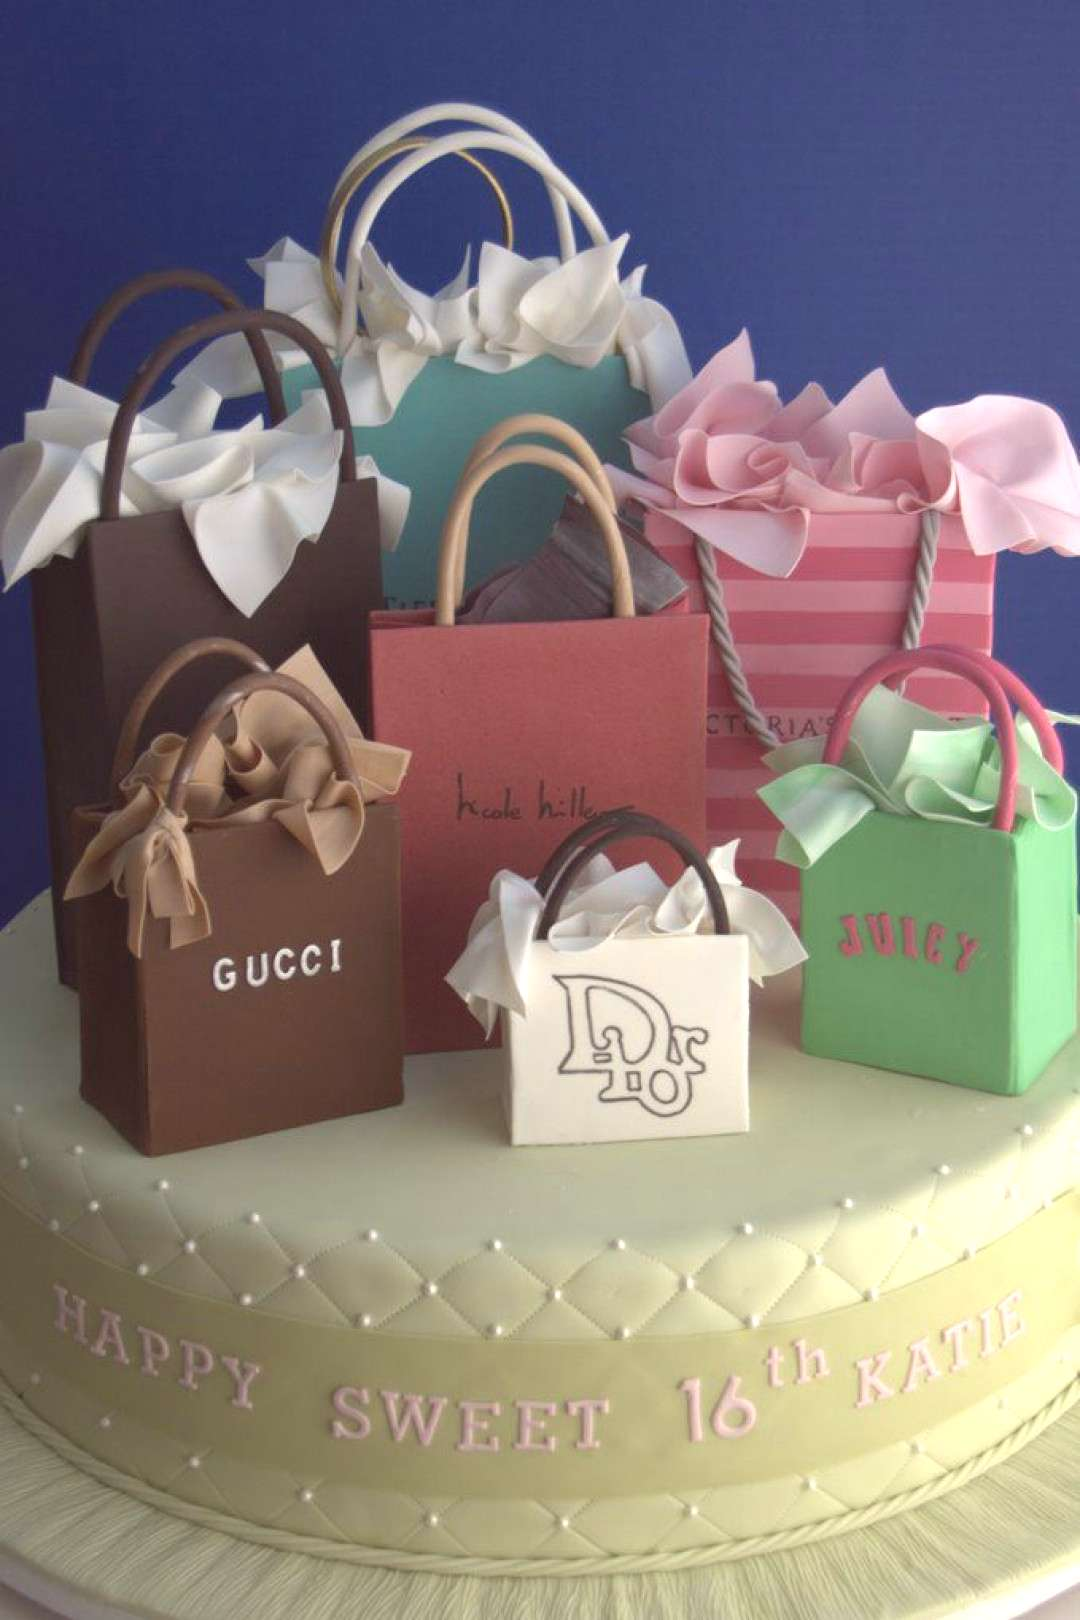 Shop for top fashion 2015 Gucci Bags Purse with wholesale prices! I love these Bags.